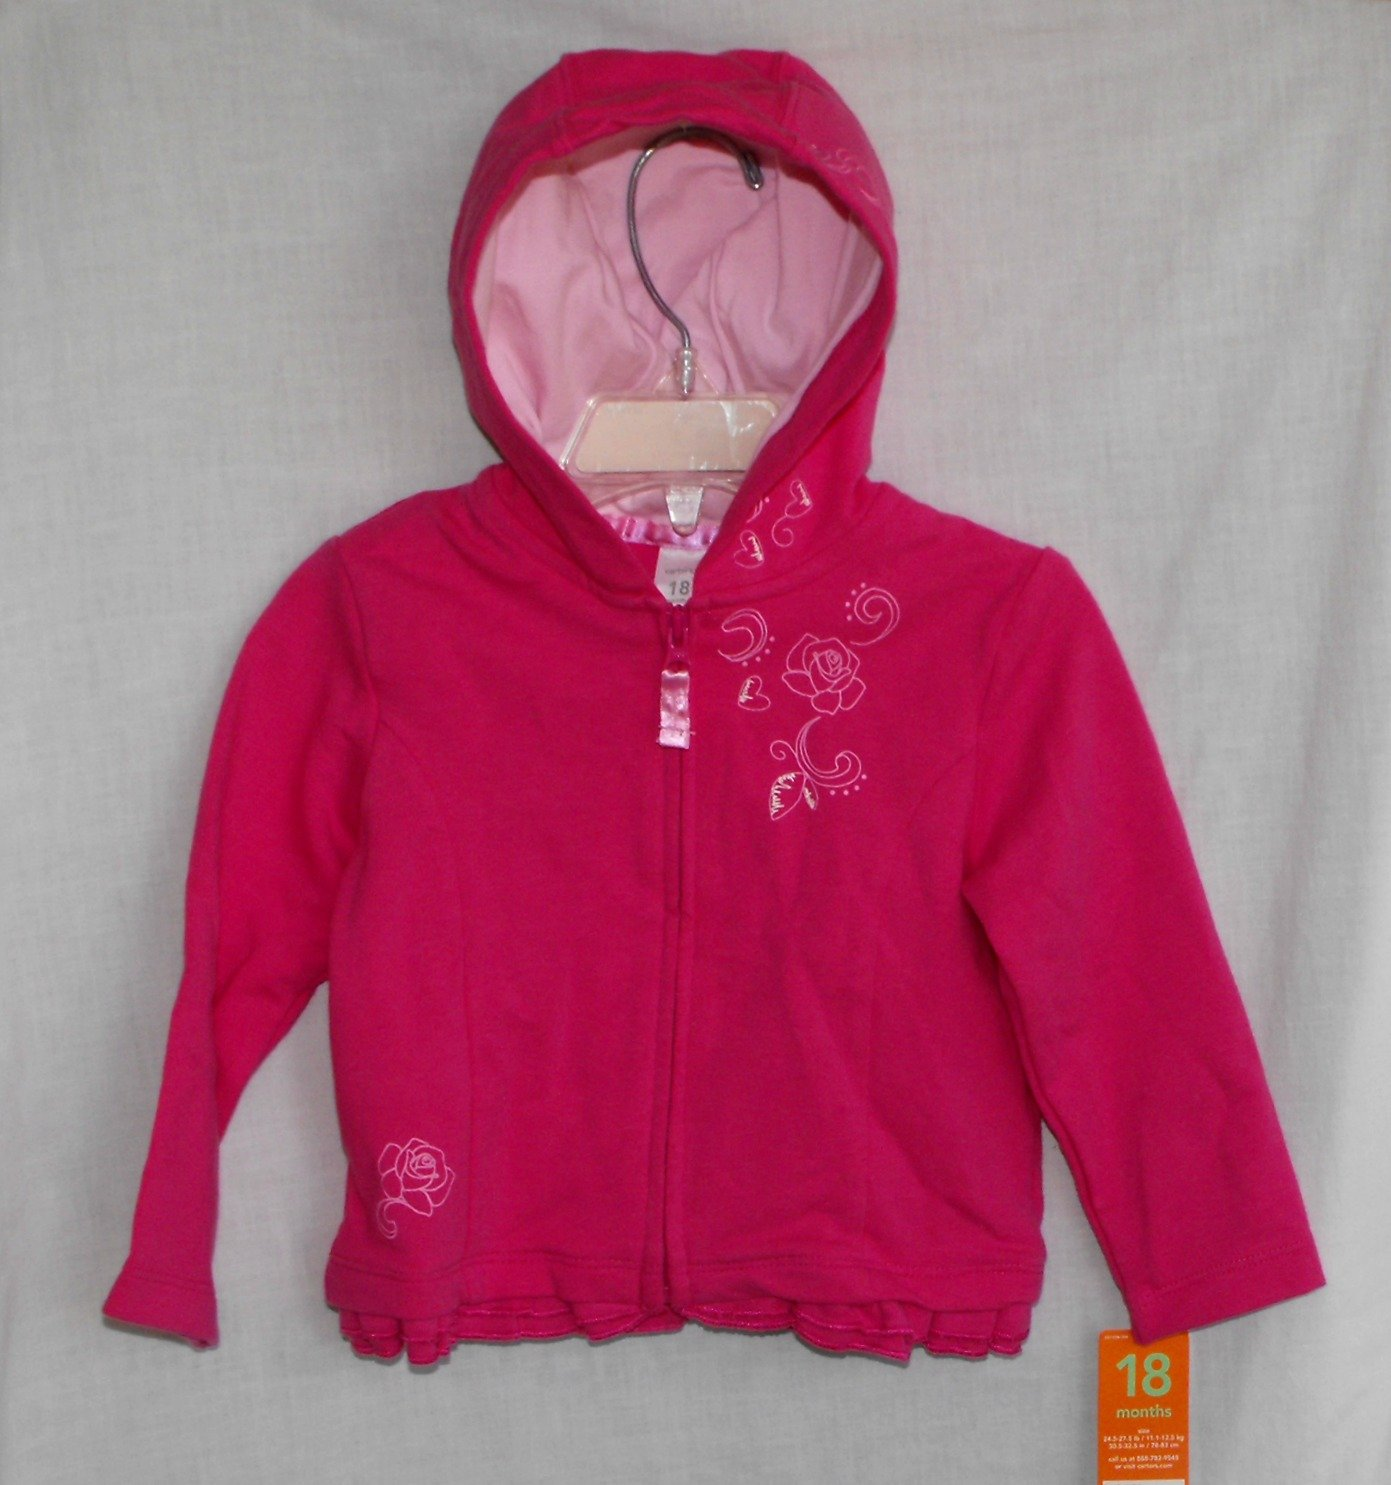 Carter's Baby Girls 18 Months Hot Pink Jacket bnwt!